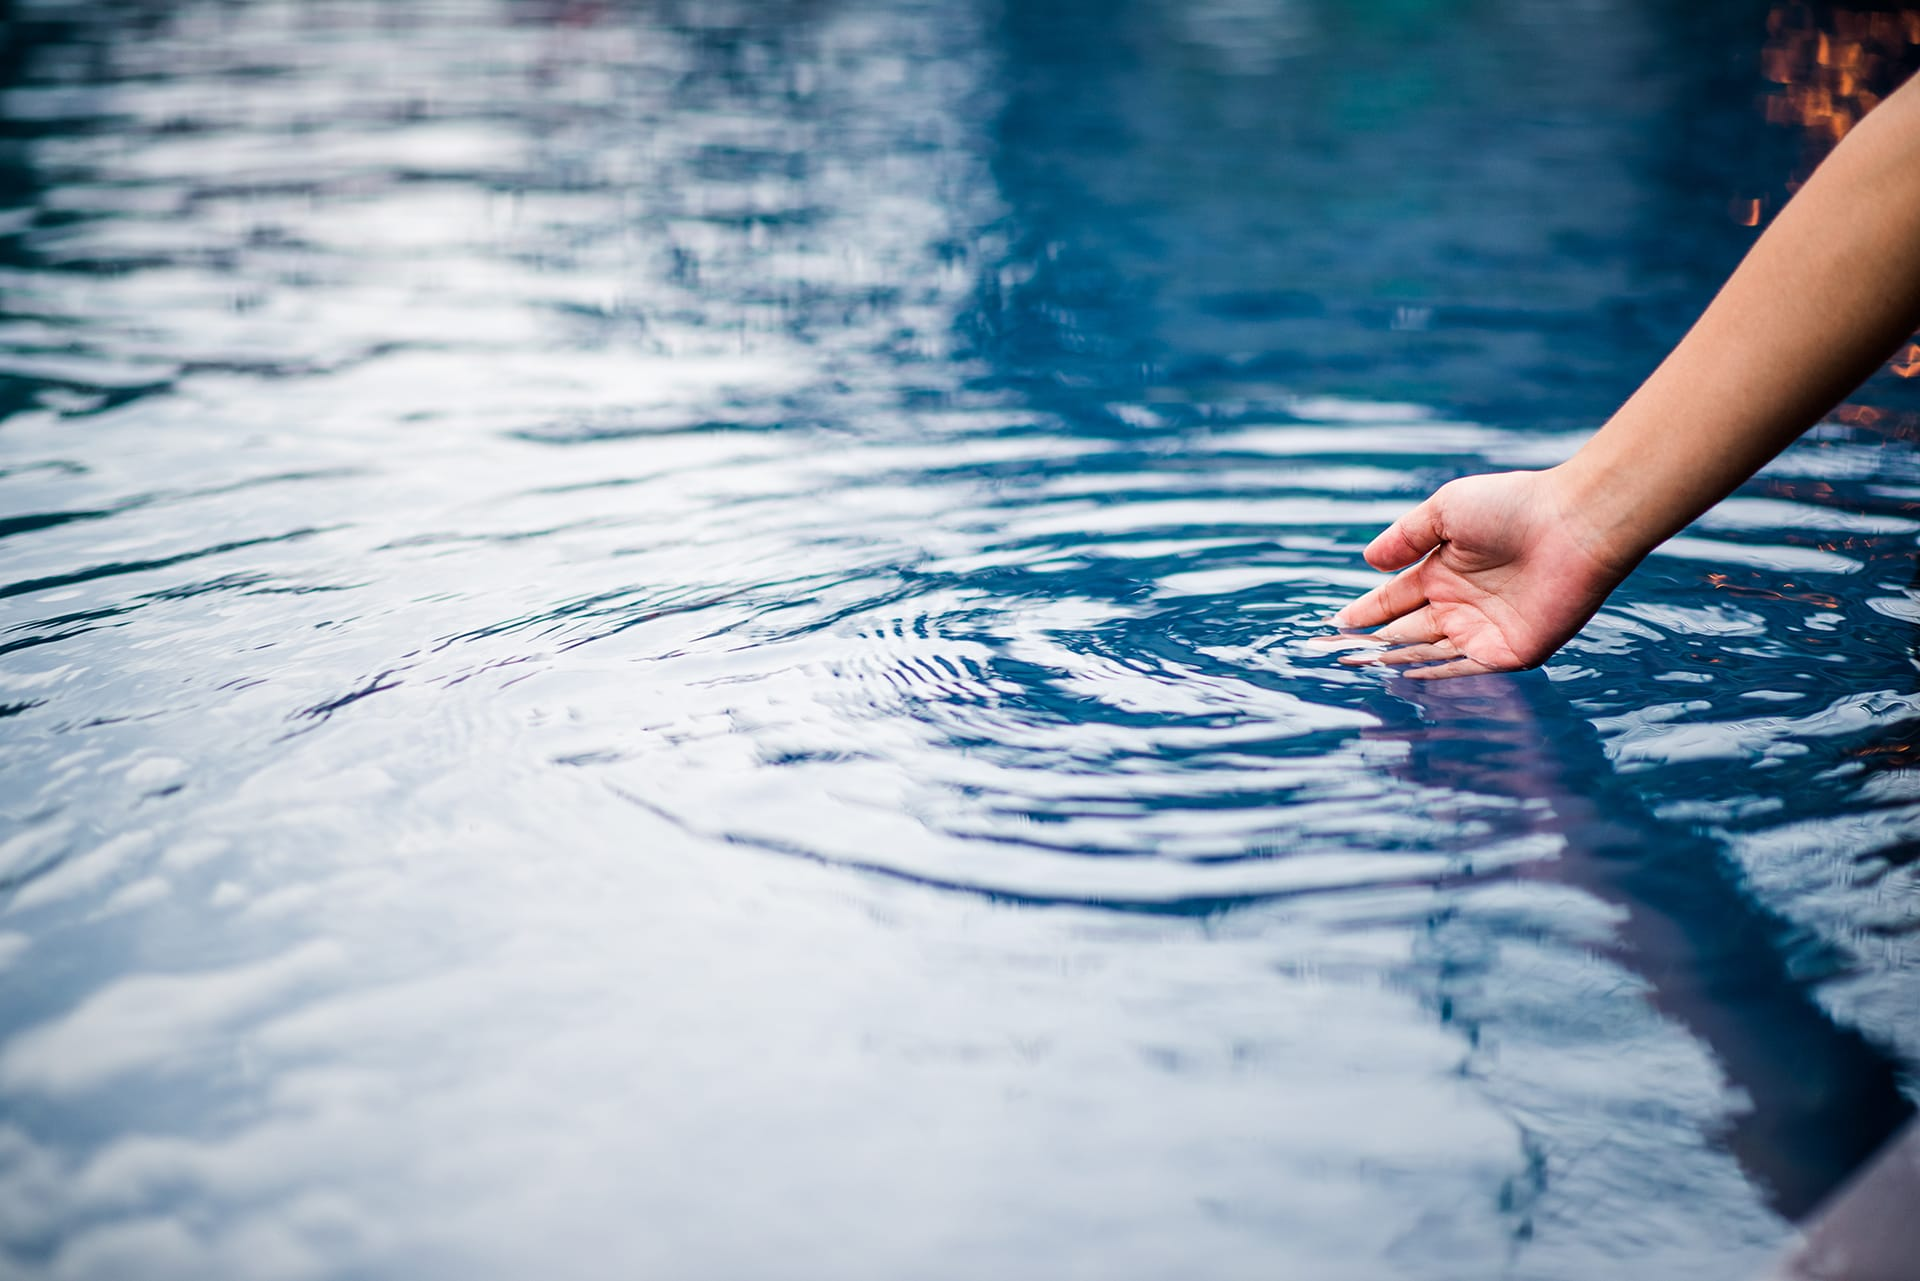 hand-that-touches-blue-water-pool-is-clean-bright-with-drop-water-o